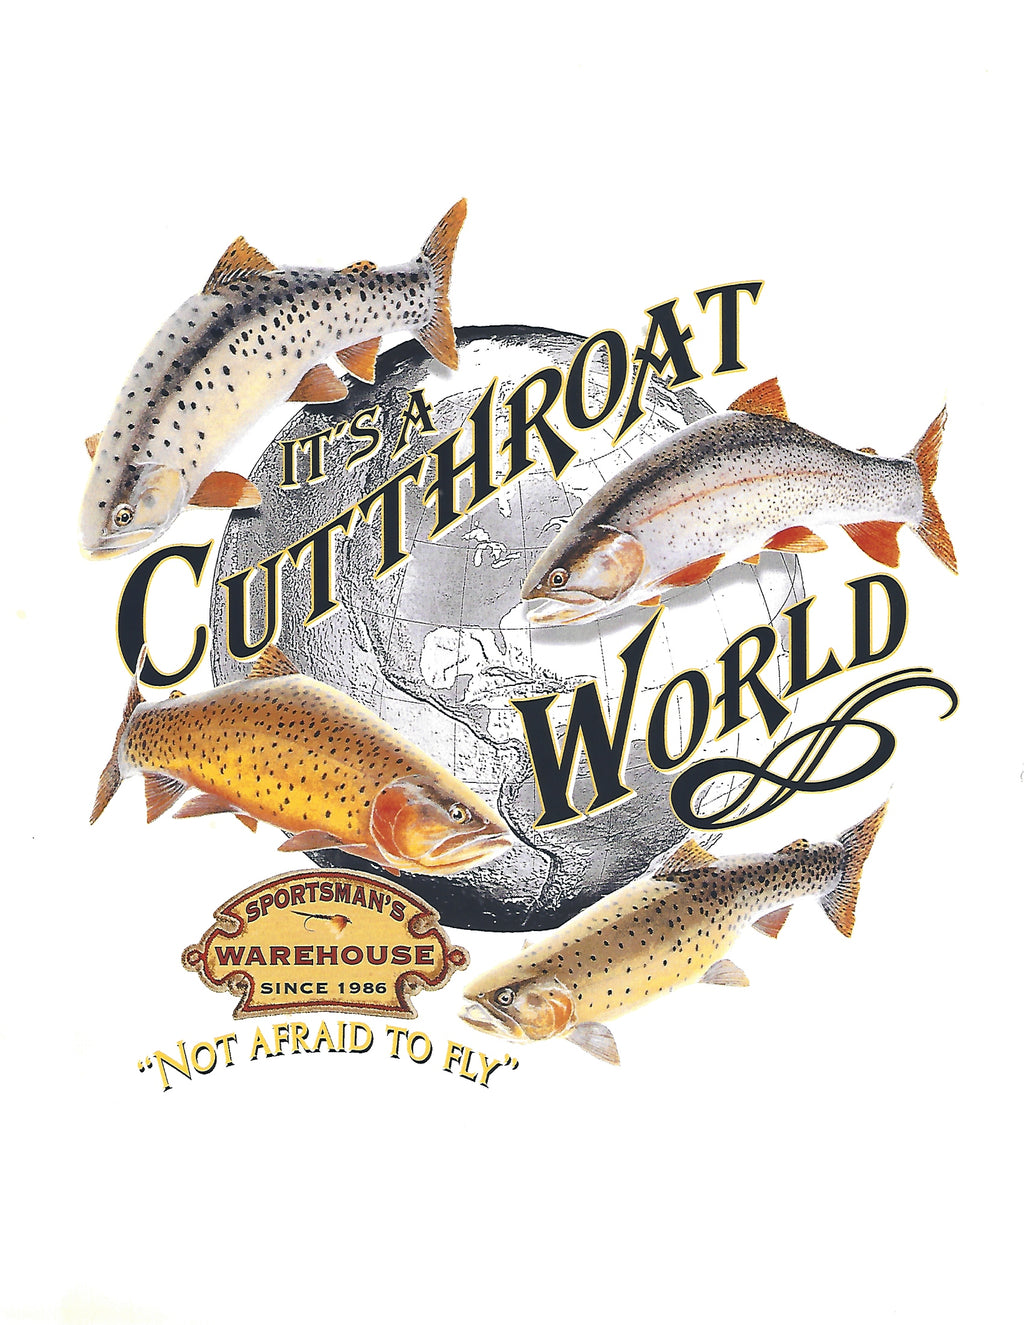 Value Rock Cutthroat World T shirt( Fit Is Like Standard Tee)